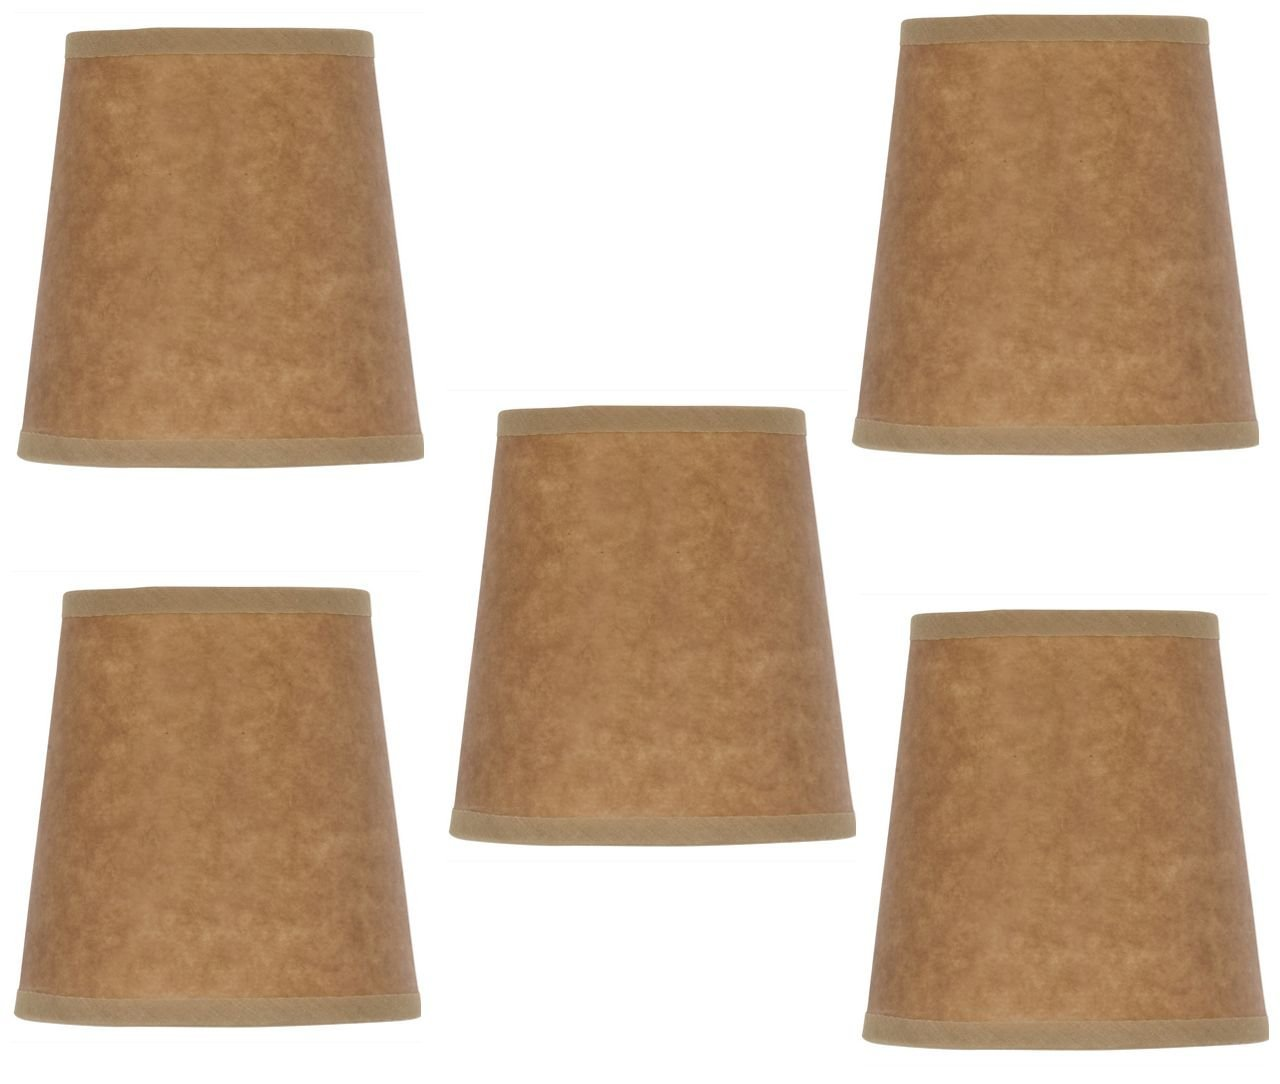 Mini Chandelier Shades Clip On Small Lamp shades set of Five Oiled Craft Paper